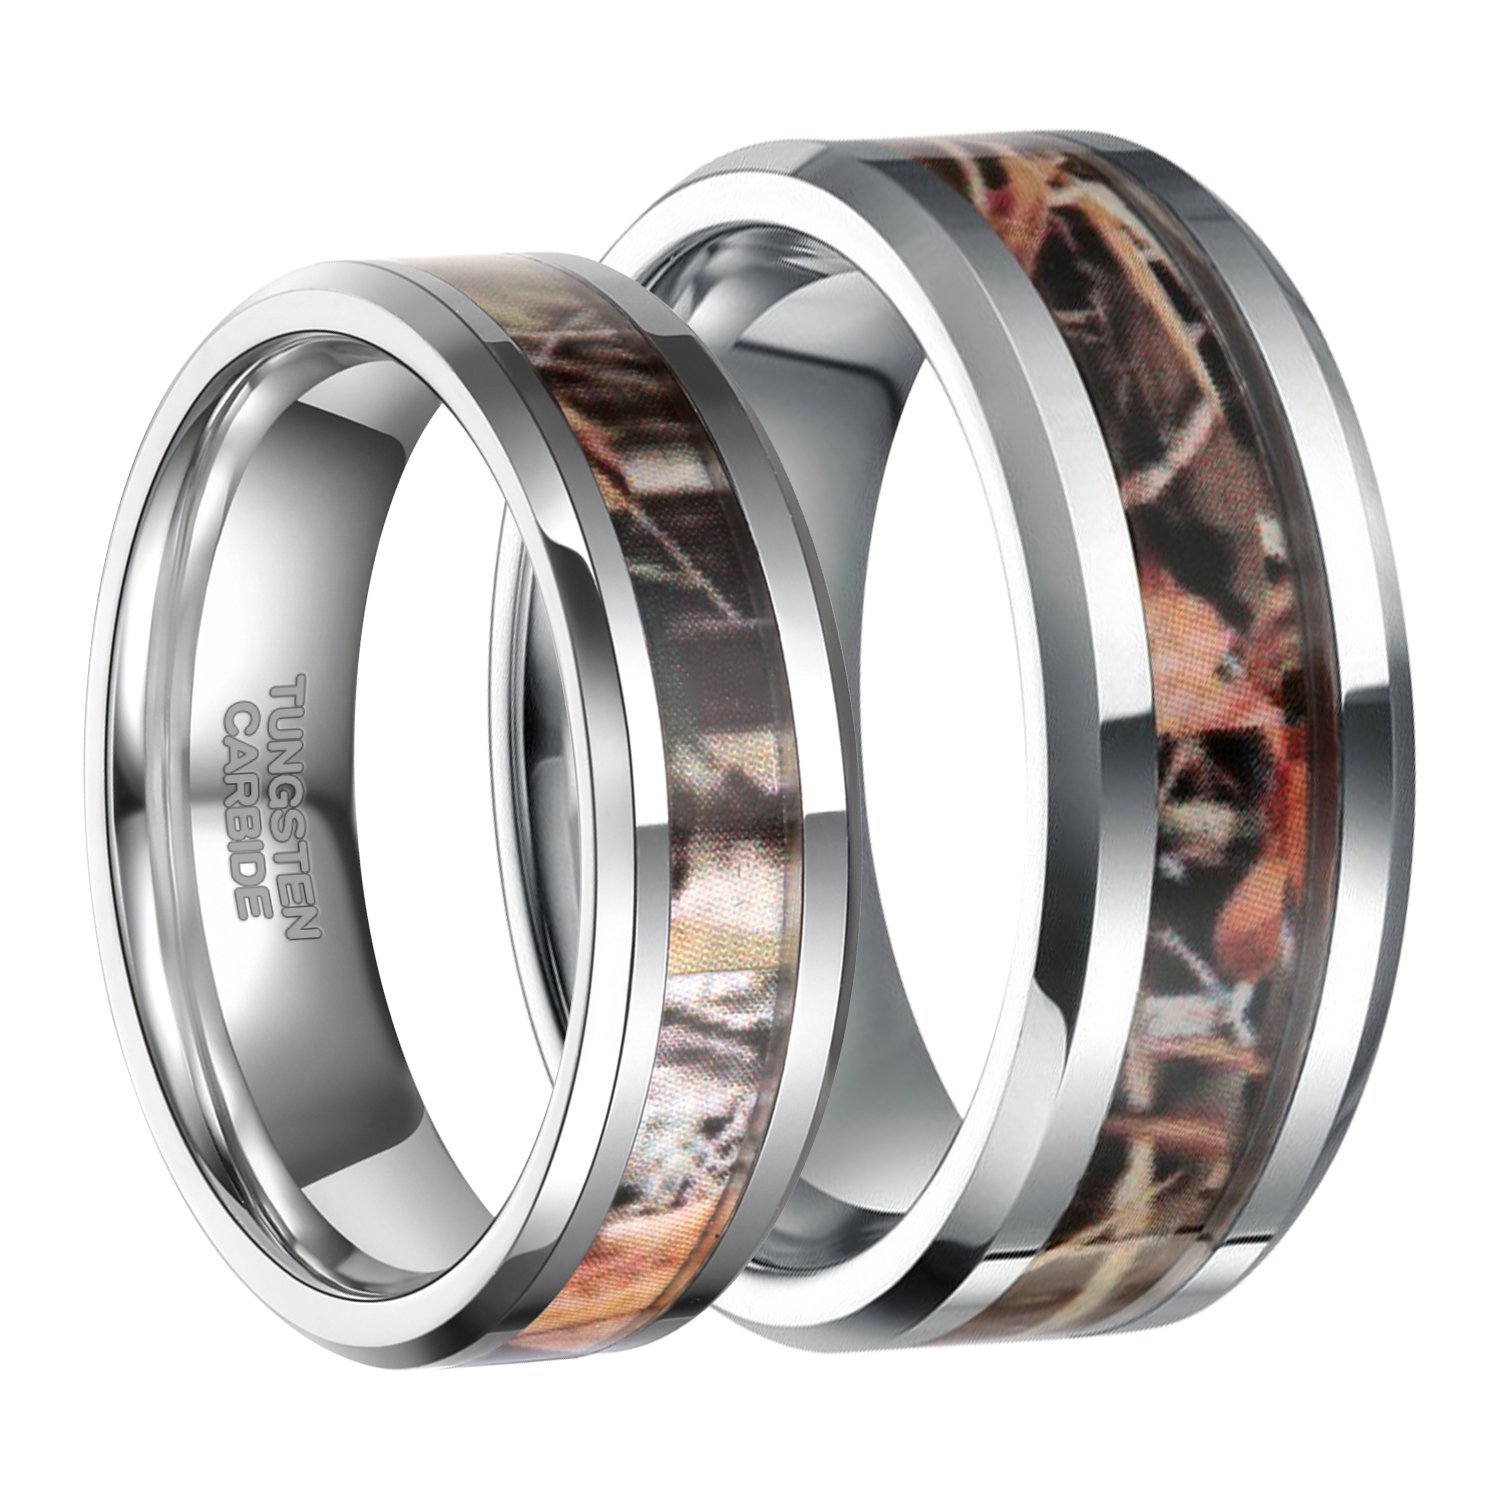 Amazoncom Frank Sburton 6mm 8mm Camo Wedding Bands For Men Women